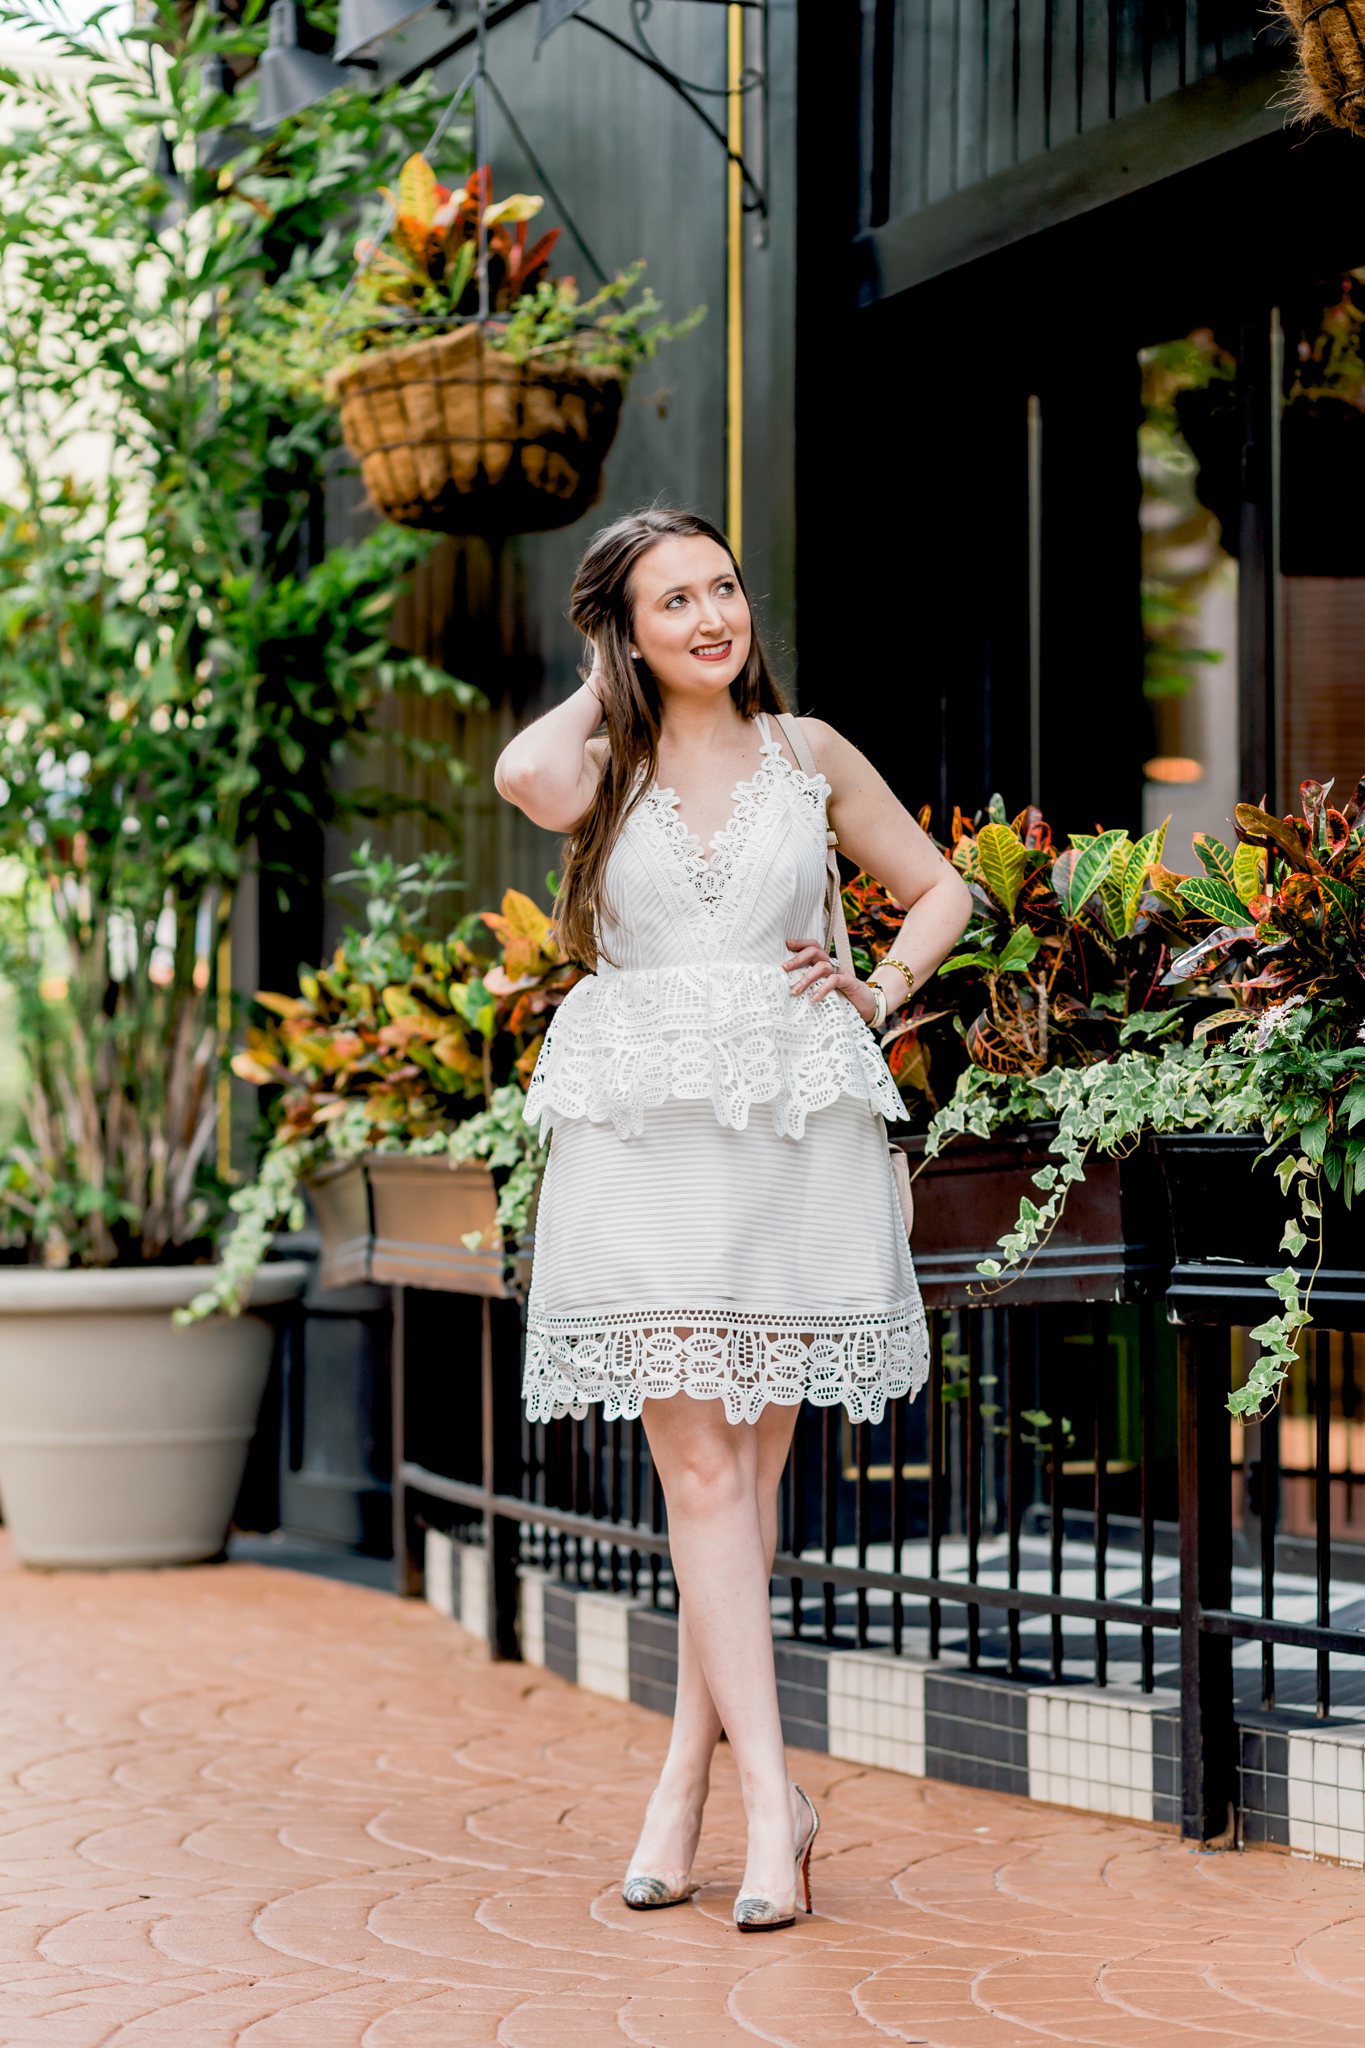 peplum dress, white dress, self-portrait, self-portrait dress, self-portrait peplum dress, chloe marcie mini, christian louboutin, louboutin glitter heels